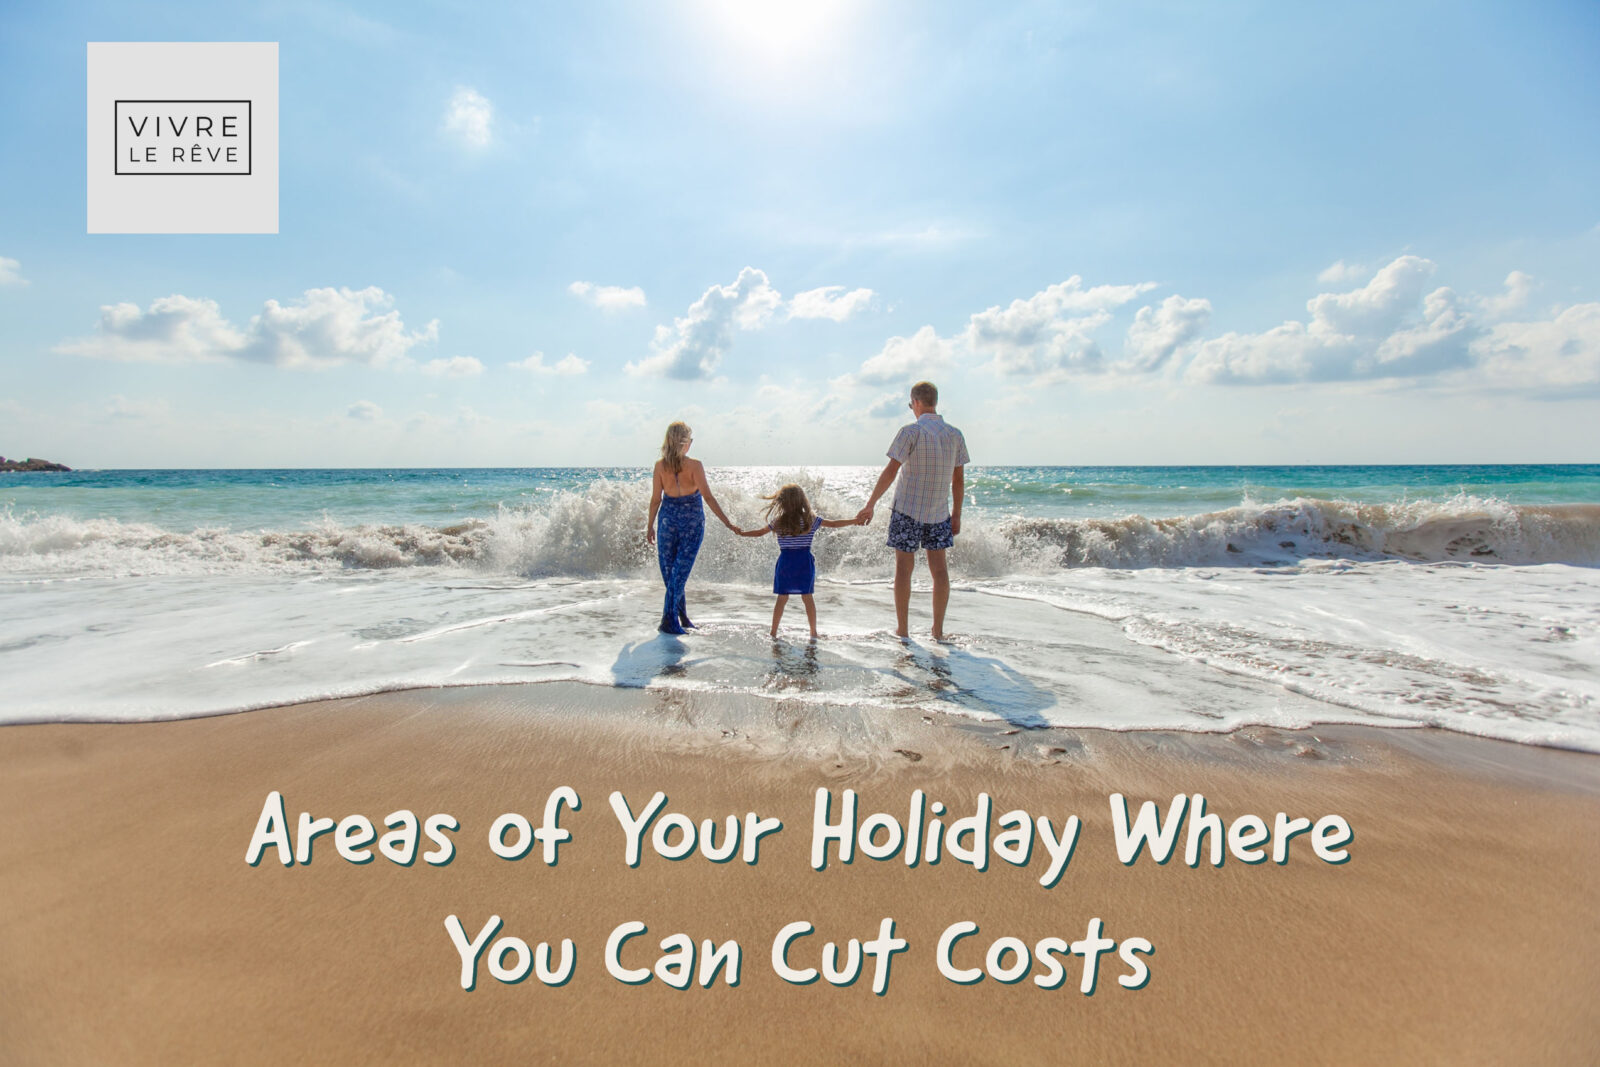 Areas of Your Holiday Where You Can Cut Costs